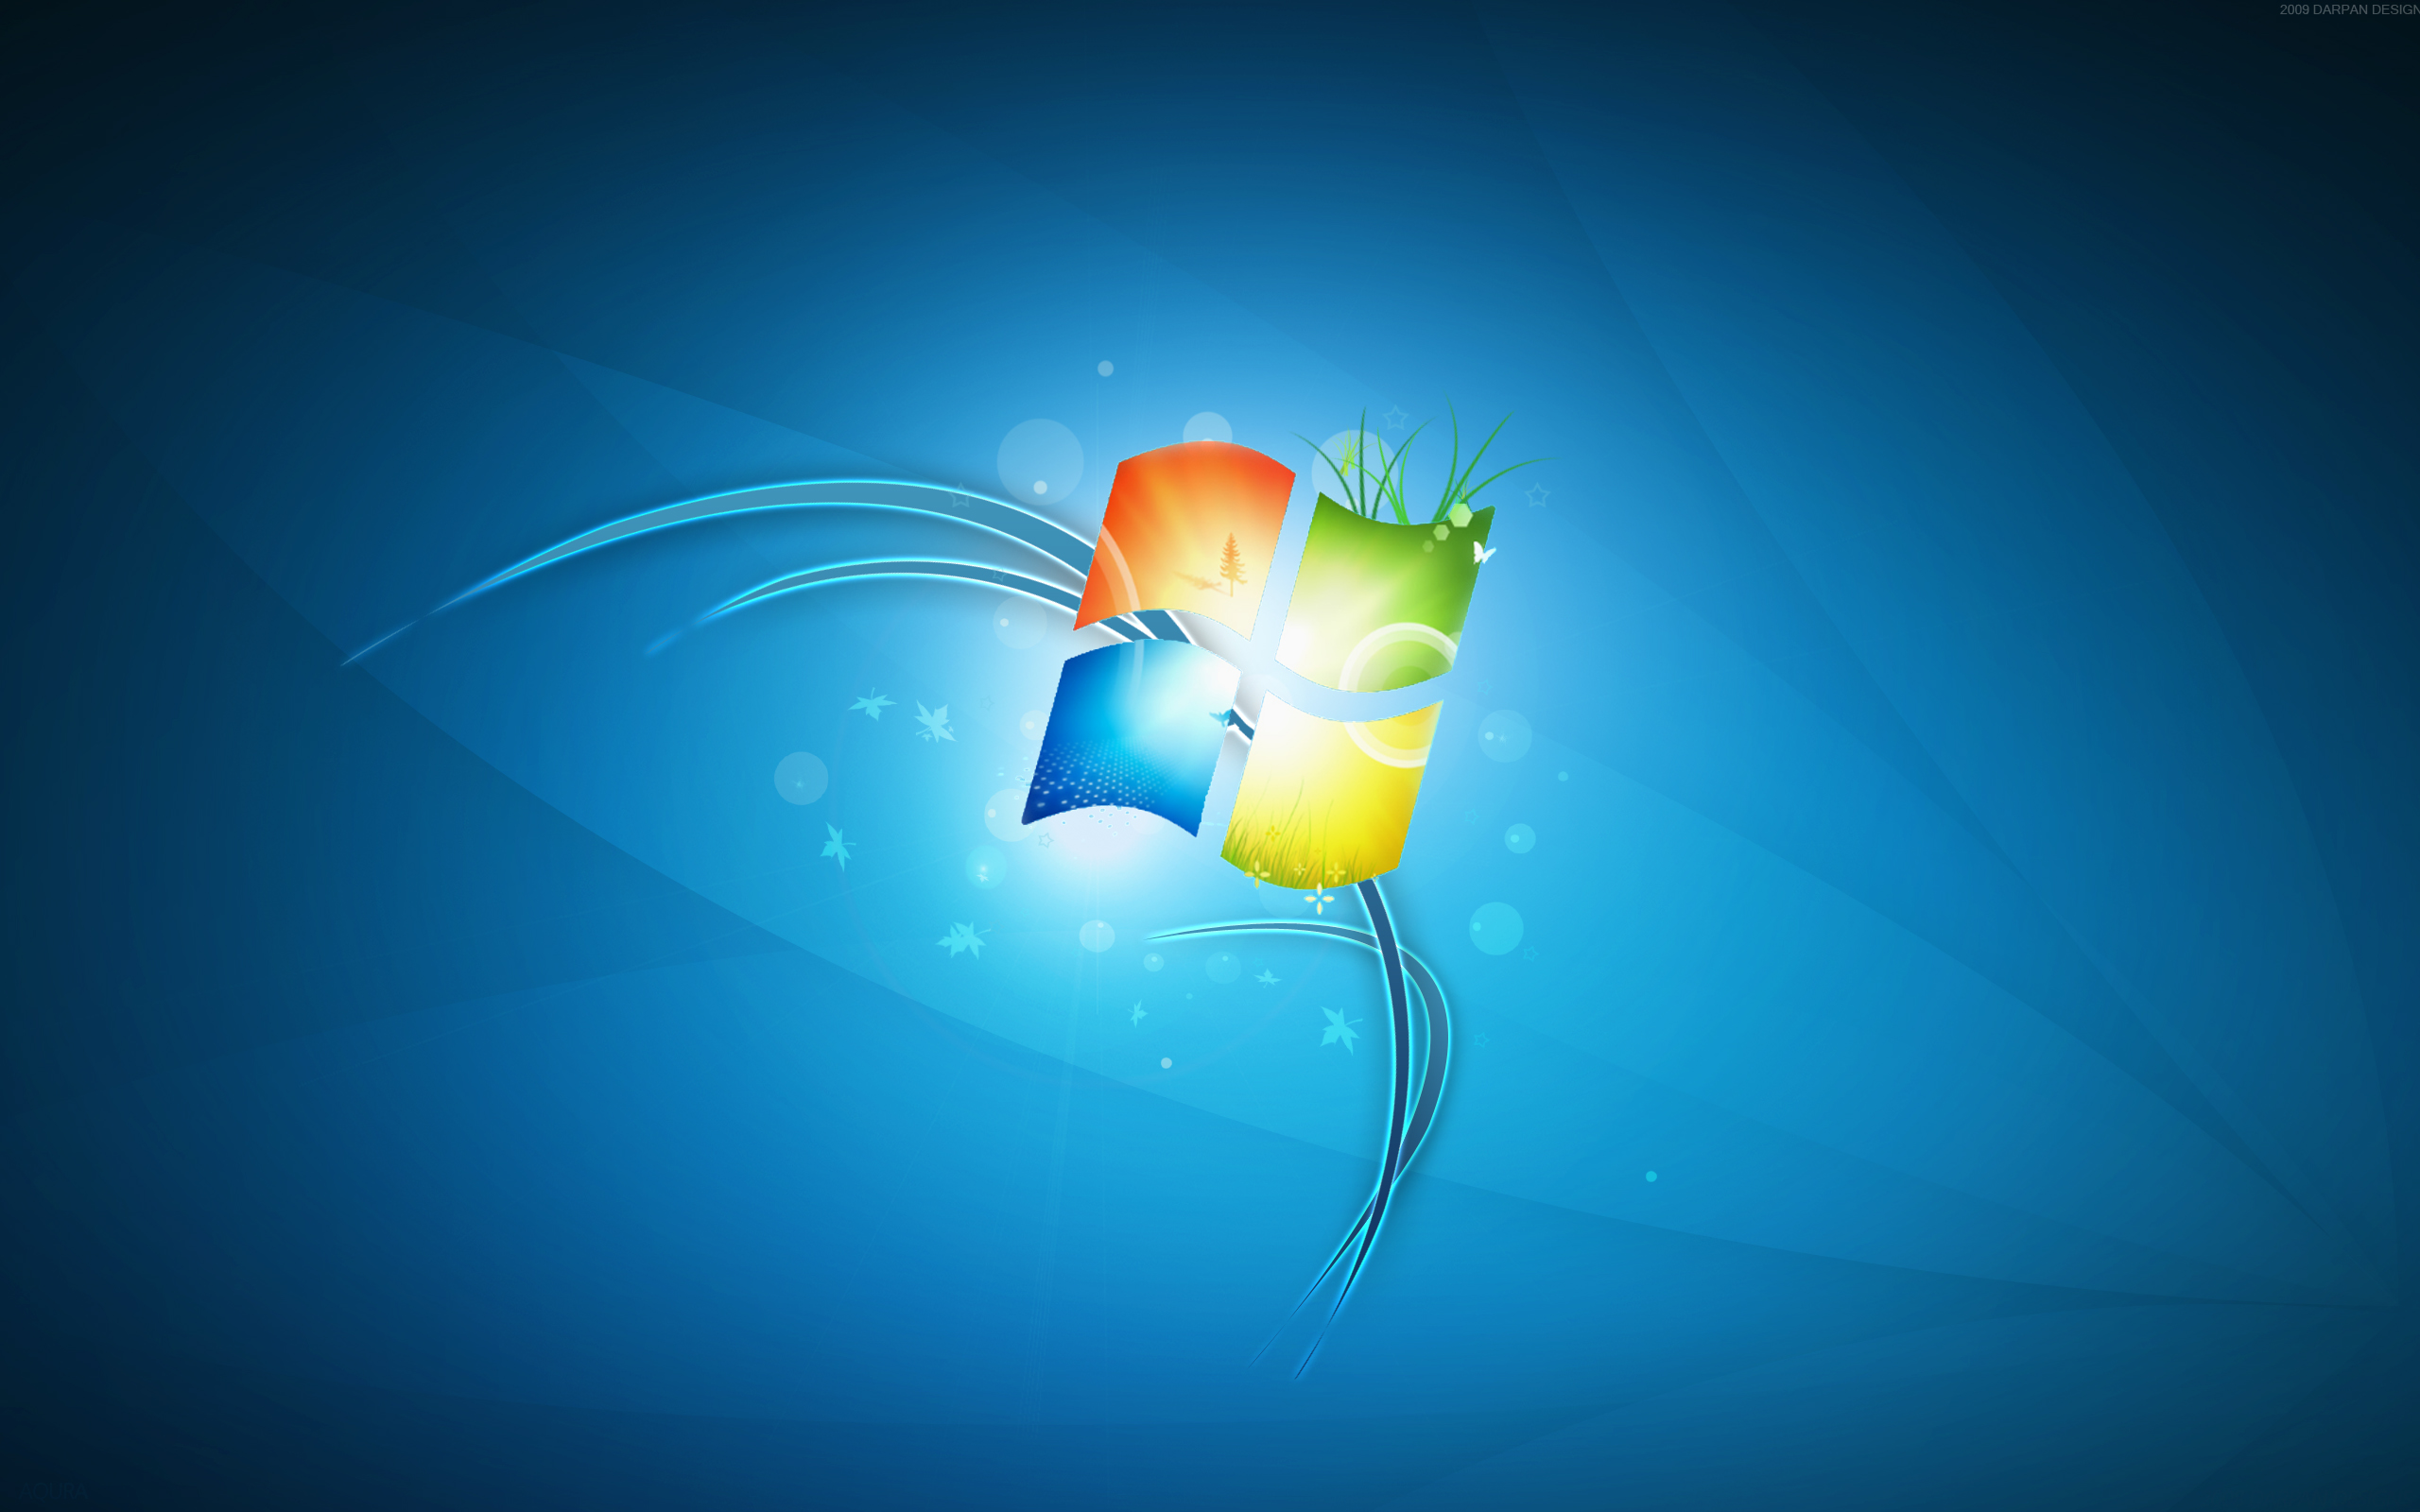 Amazing HD Wallpapers For Windows 7